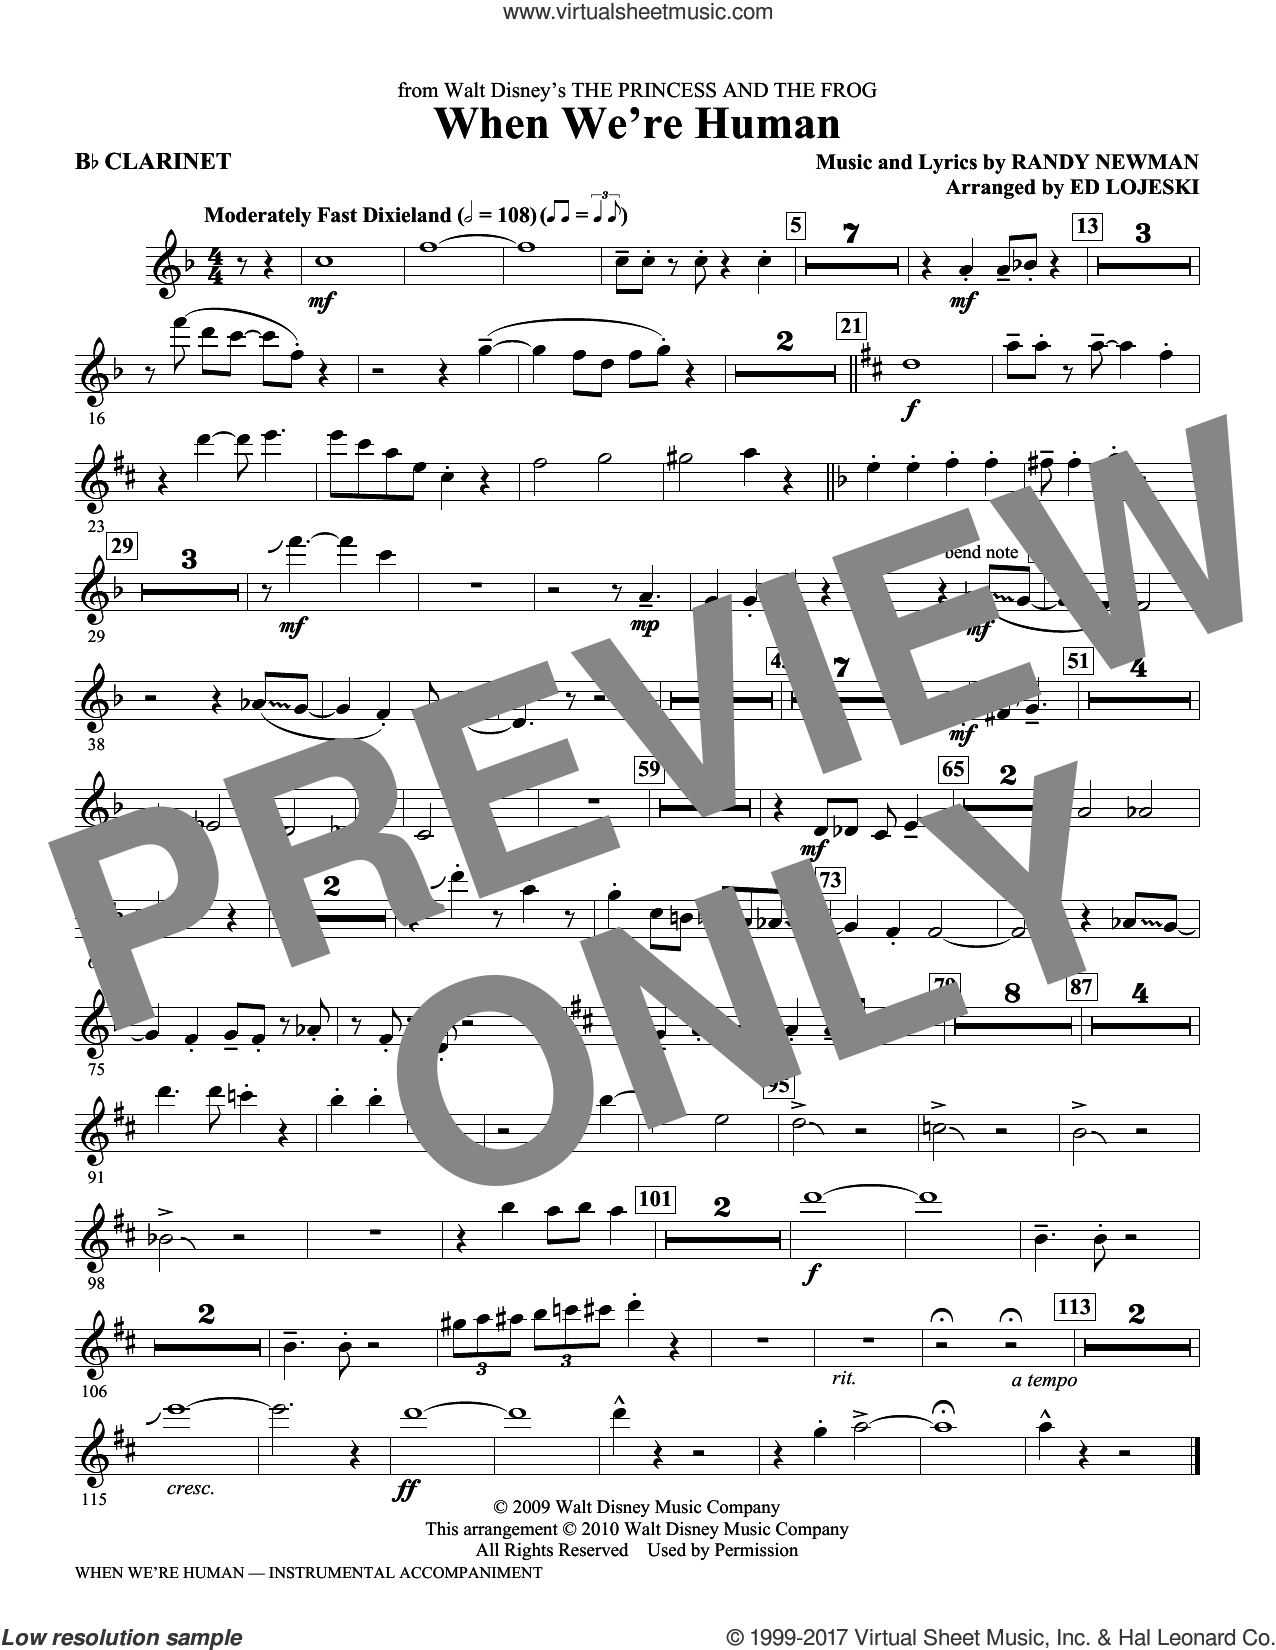 When We're Human (from The Princess And The Frog) (COMPLETE) sheet music for orchestra by Randy Newman